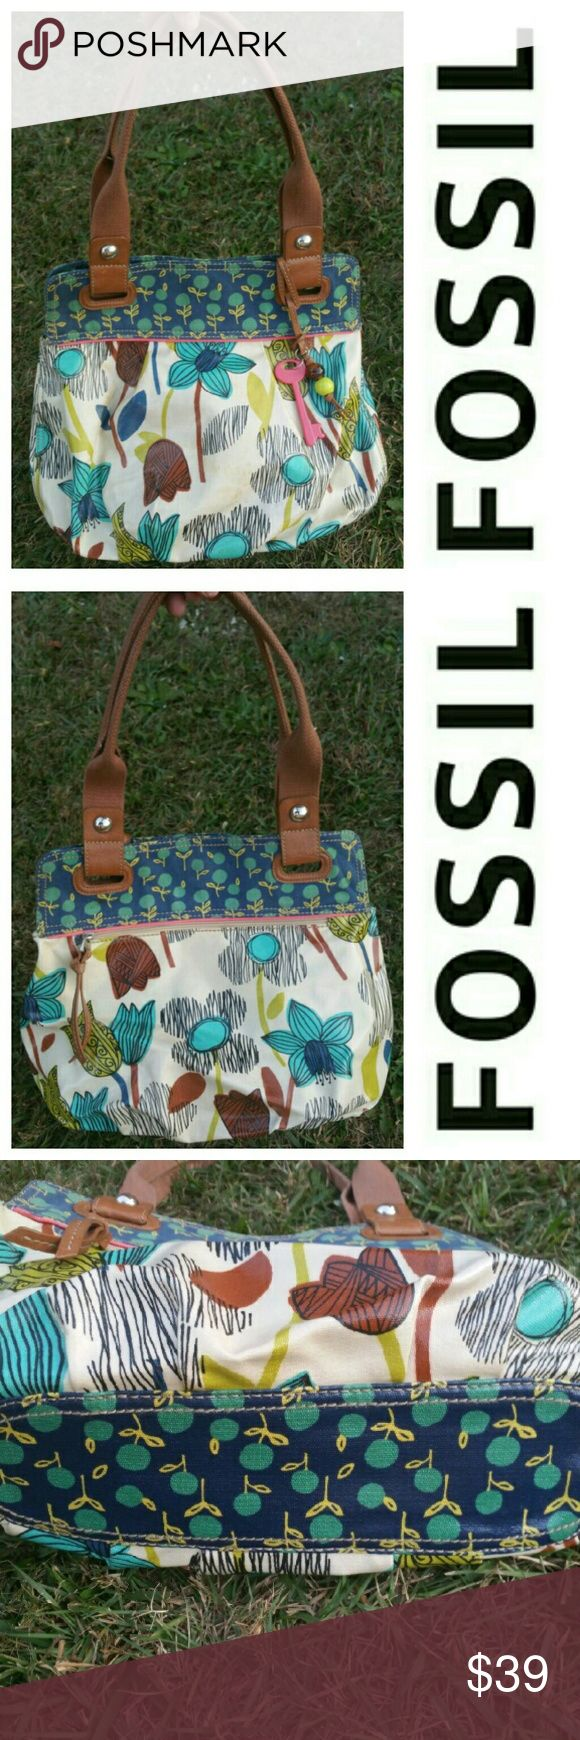 Fossil Key Per Large Bag Tilip Floral Shoulder Bag Fossil Key Per tote Large Bag Tilip Floral Shoulder Bag. This bag has been gently used there is no where on the corners, inside is clean, there are some minor stains on the outside that are actually hard to see because of the design please see pictures. This is a great large bag! Fossil  Bags Shoulder Bags